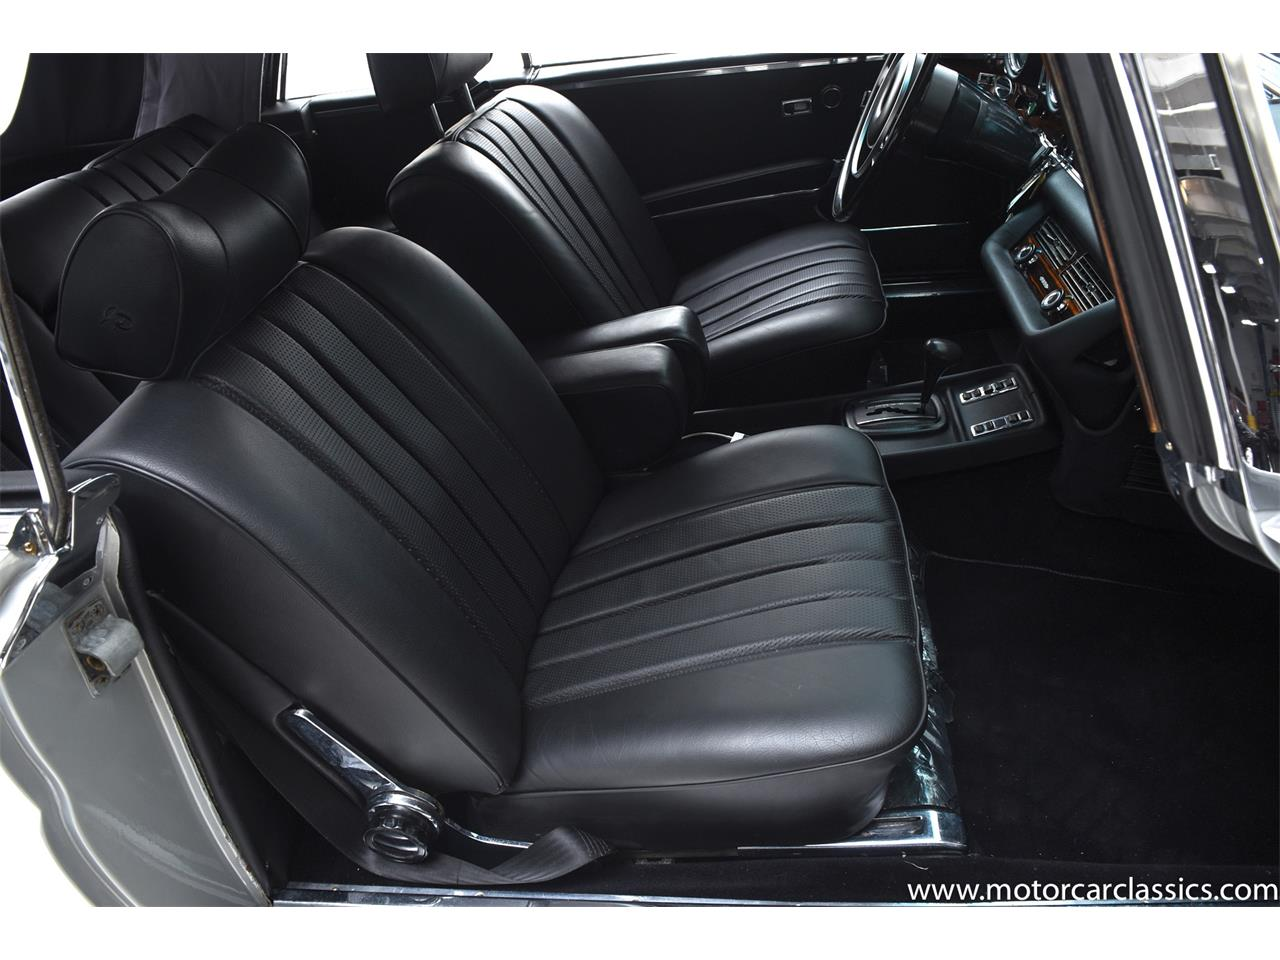 1971 Mercedes-Benz 280SE for sale in Farmingdale, NY – photo 14